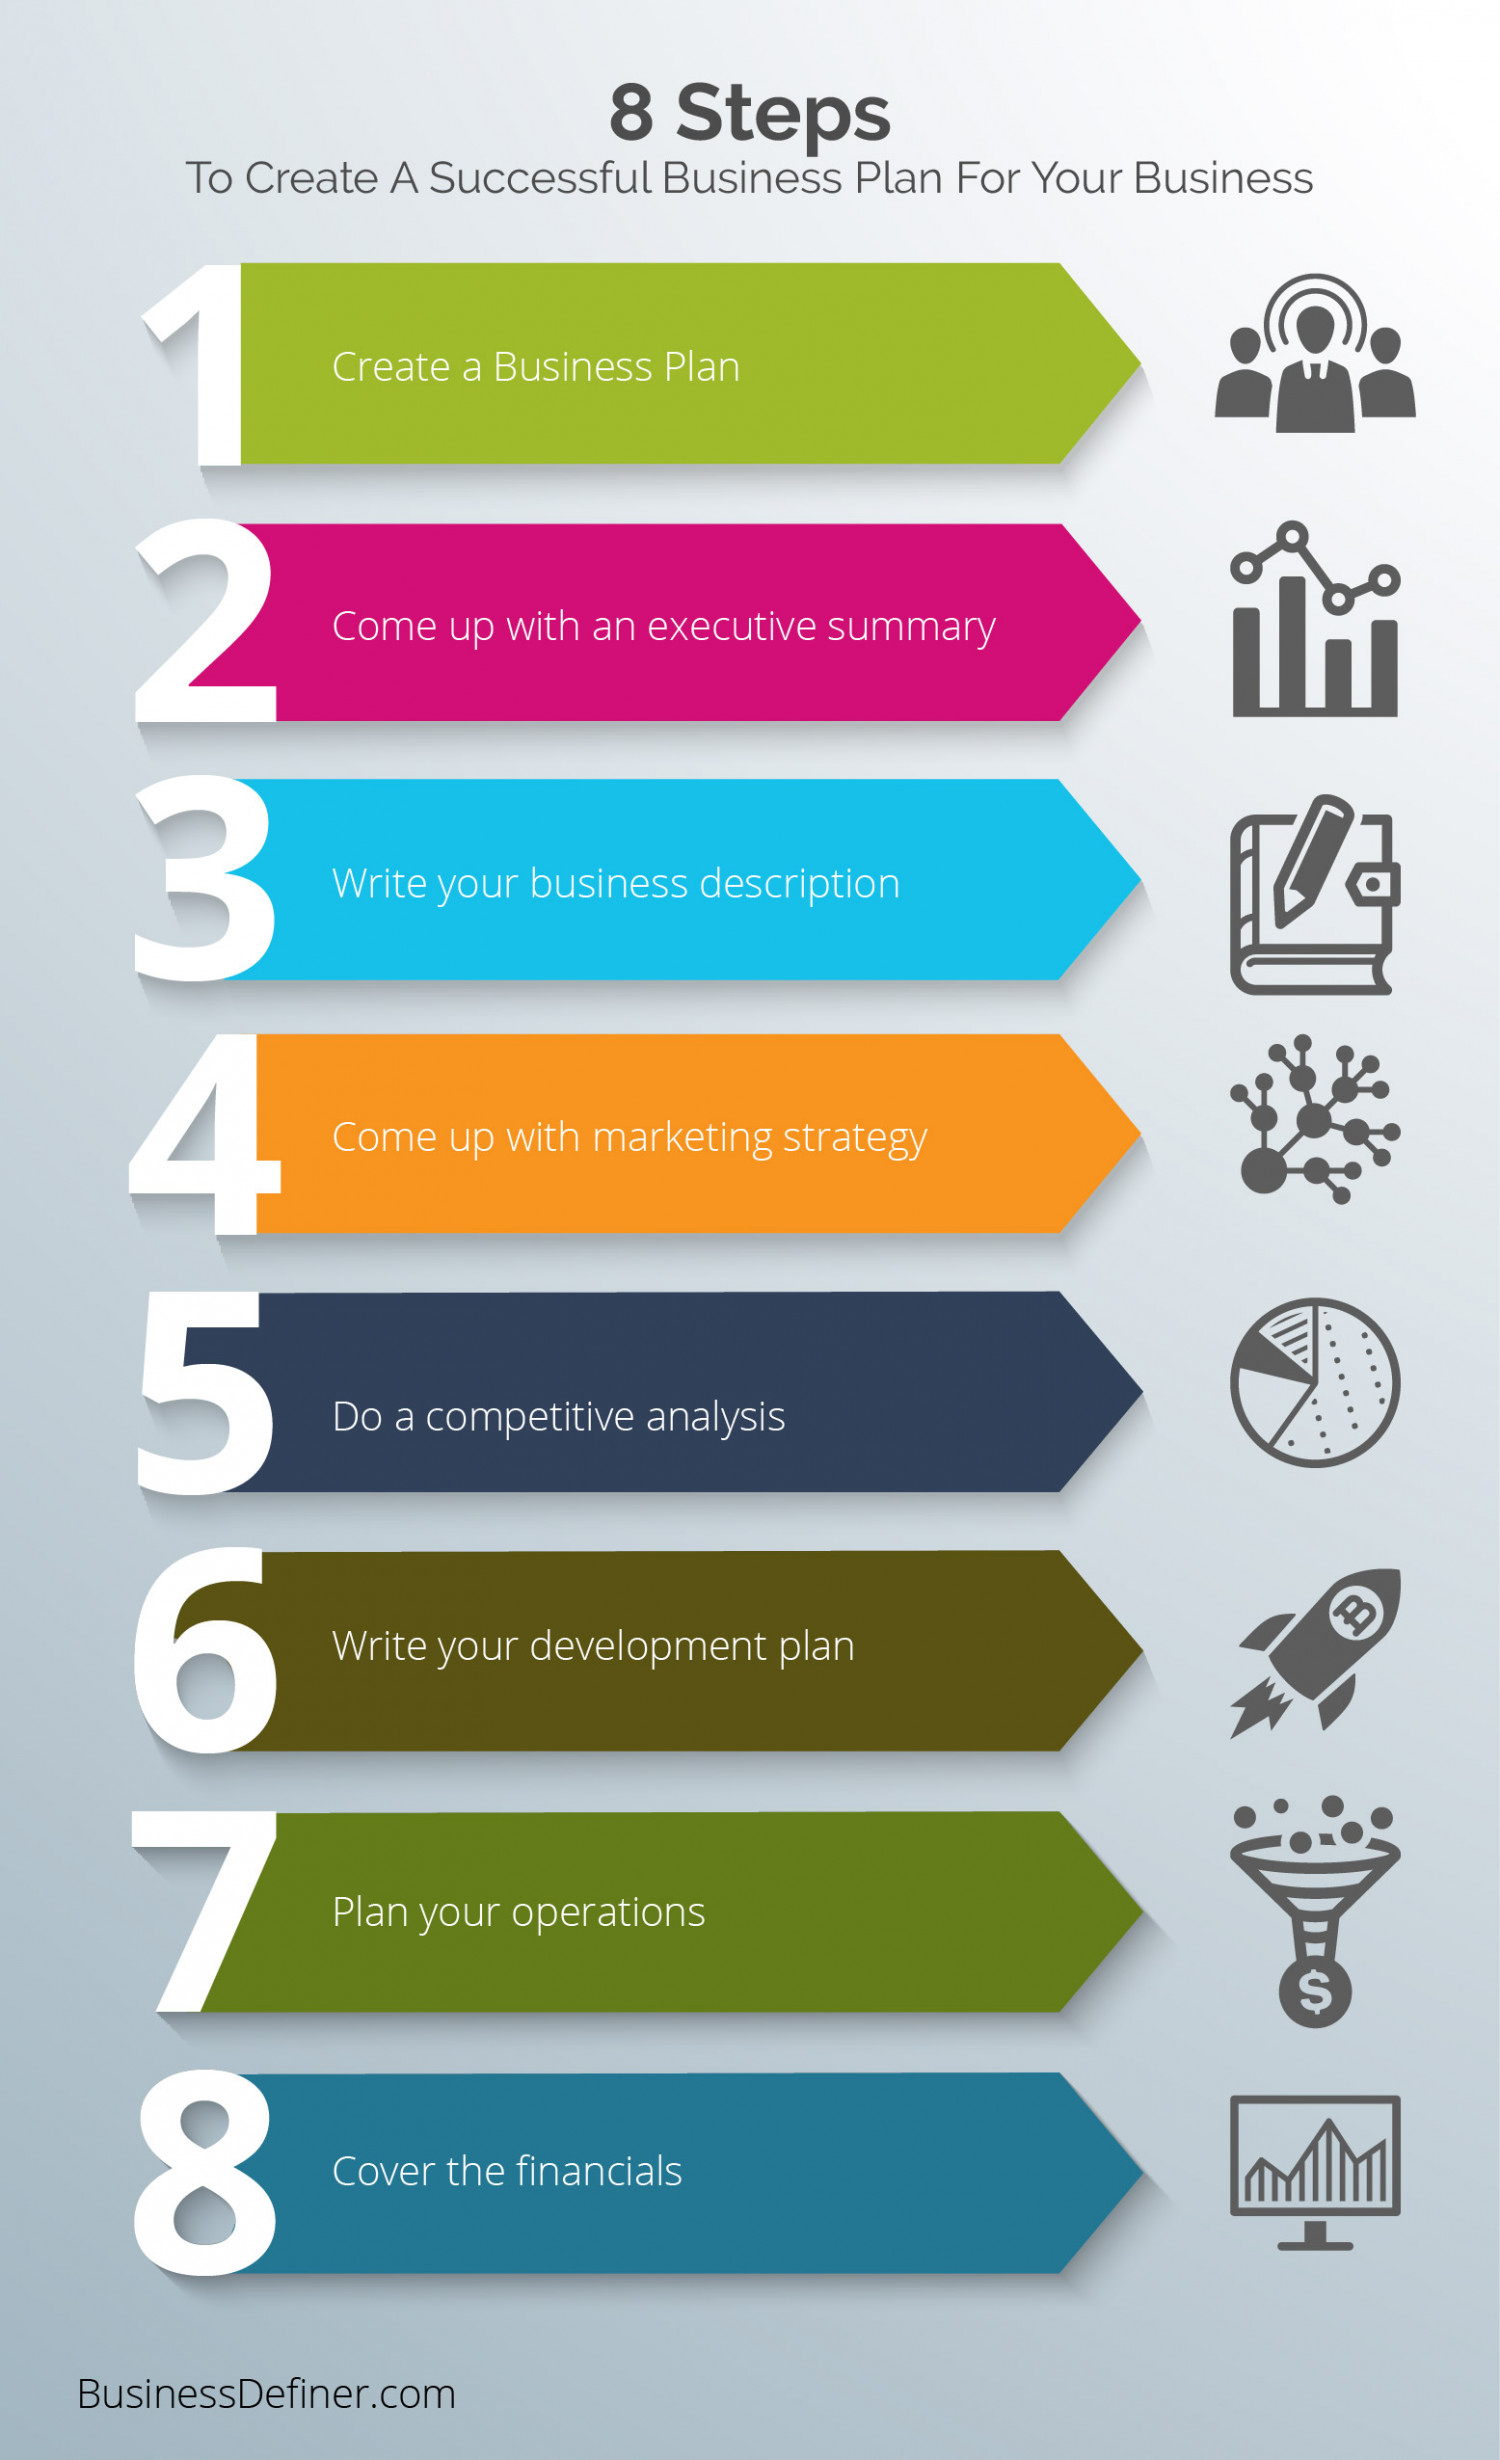 8 Steps To Create A Successful Business Plan